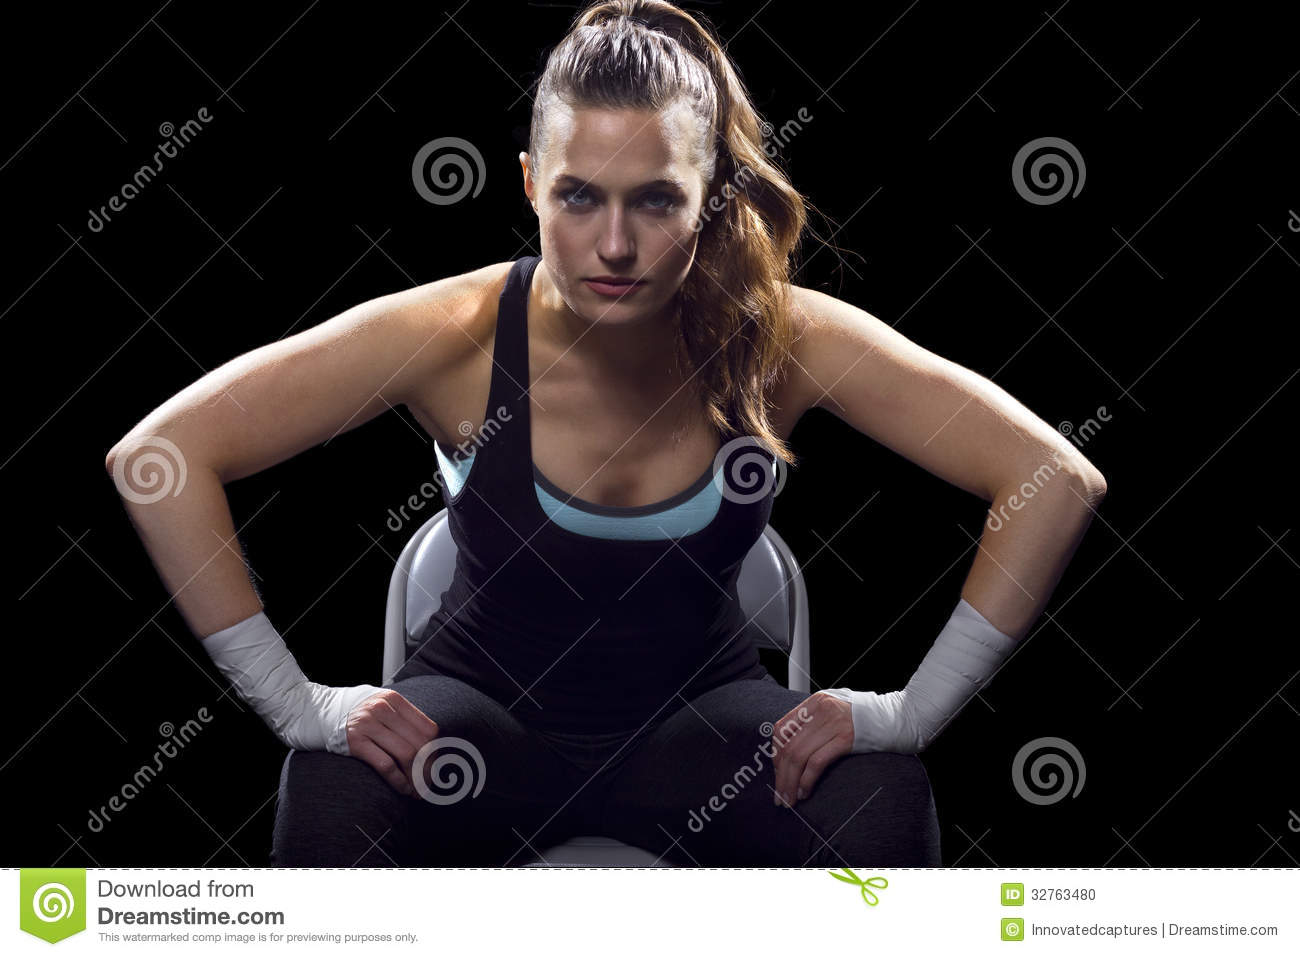 dating a female mma fighter Badass female mma fighter is both undefeated and the 21-year-old mexican fighter decided to dedicate her life to mma after attending a dating video.